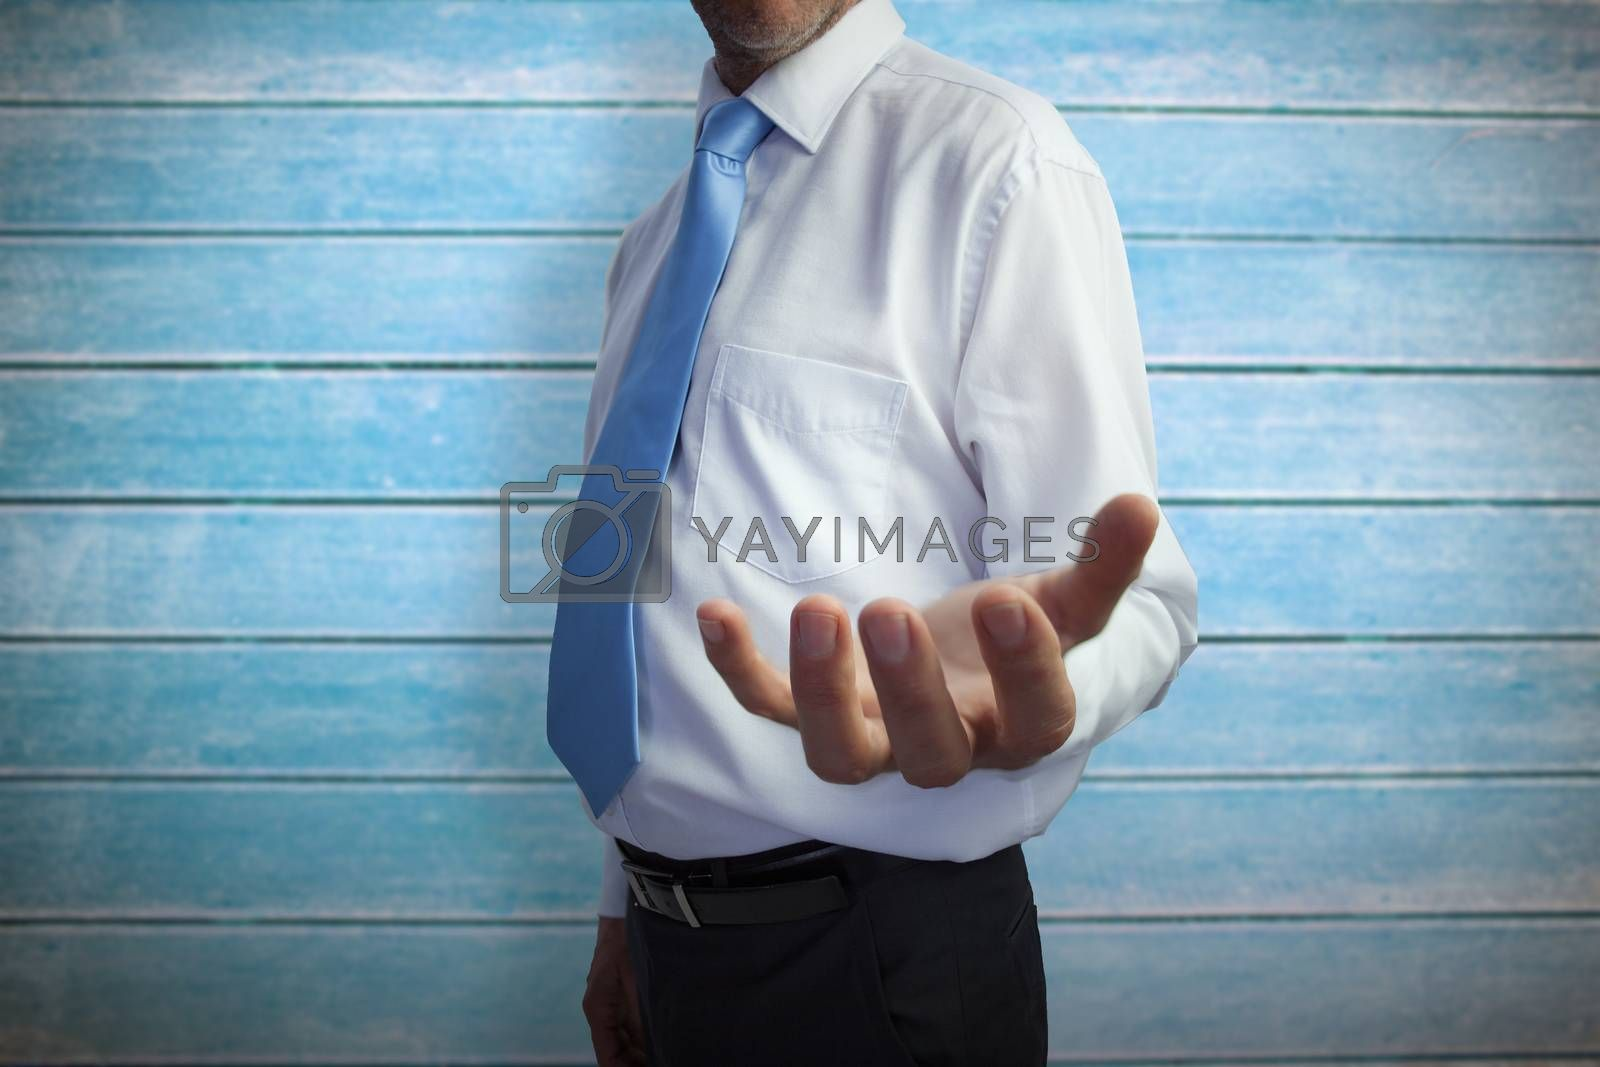 Businessman holding hand out against wooden planks